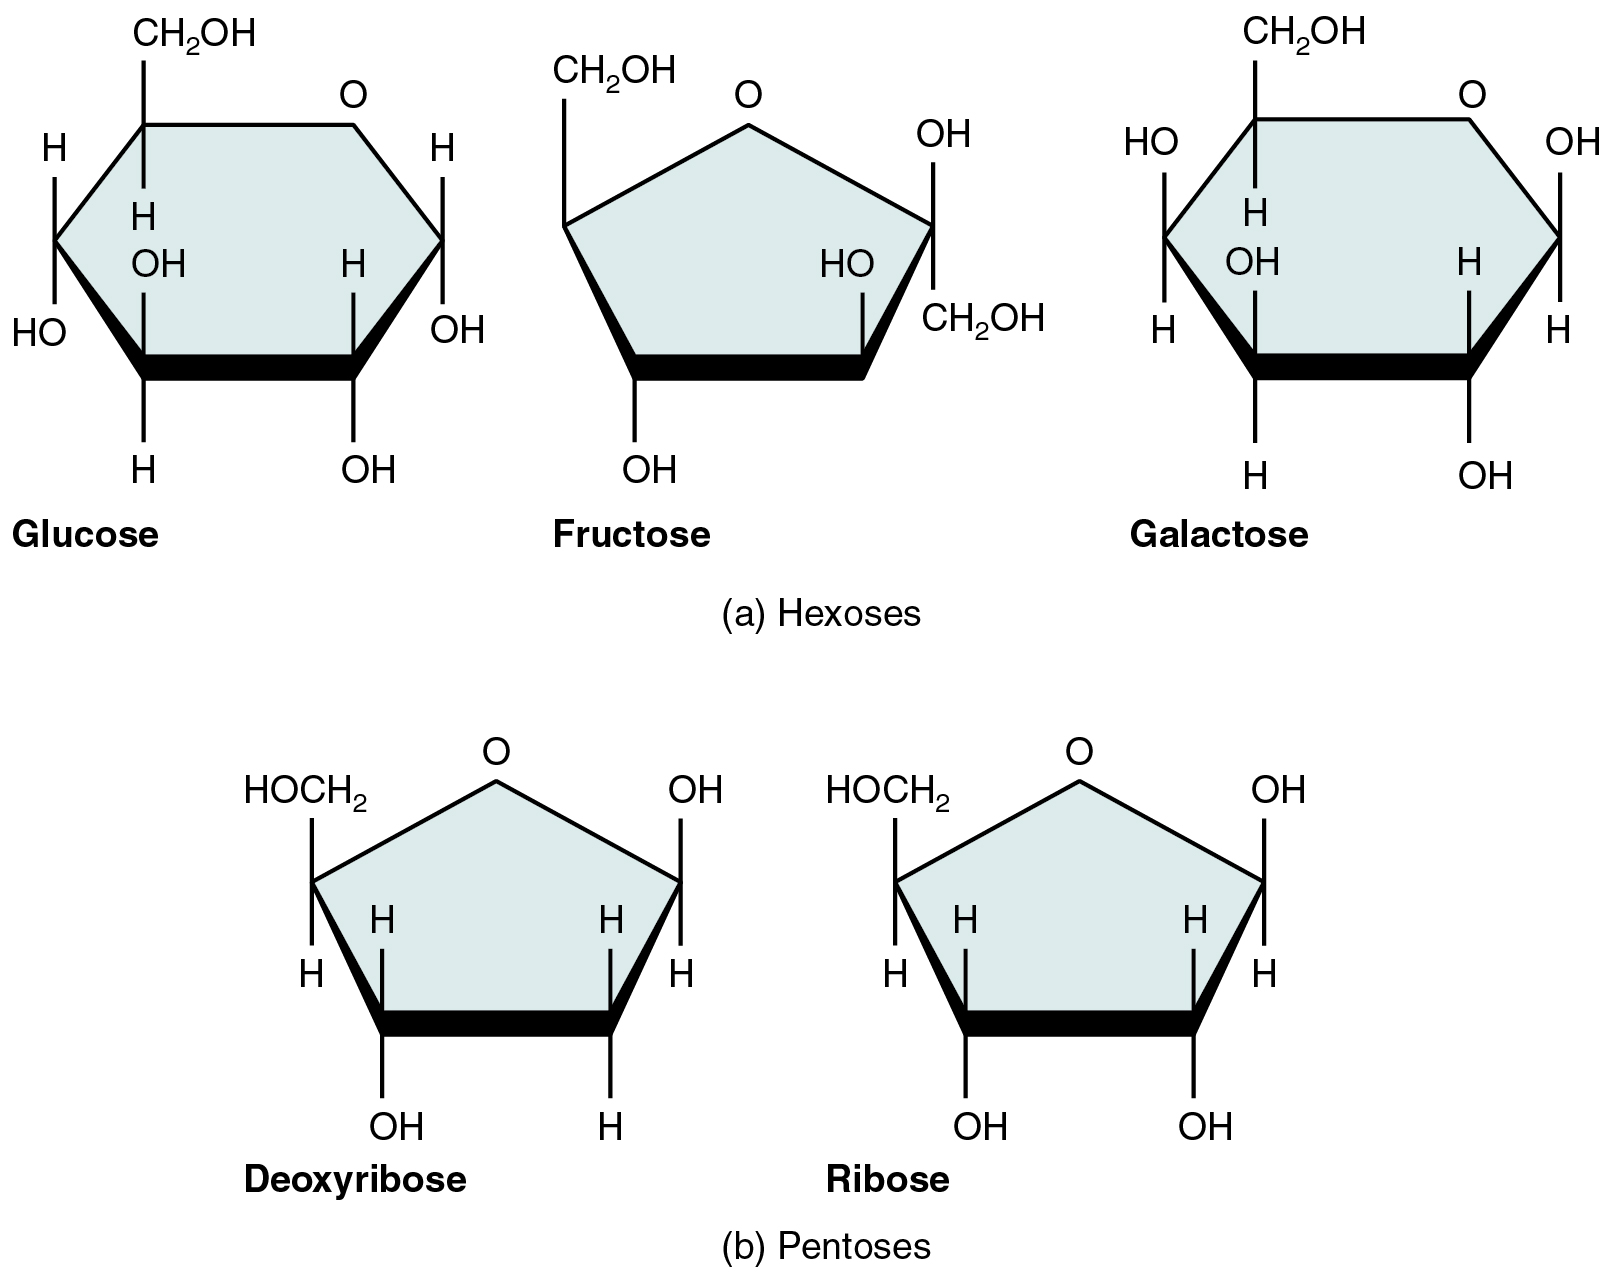 This figure shows the structure of glucose, fructose, galactose, deoxyribose, and ribose.